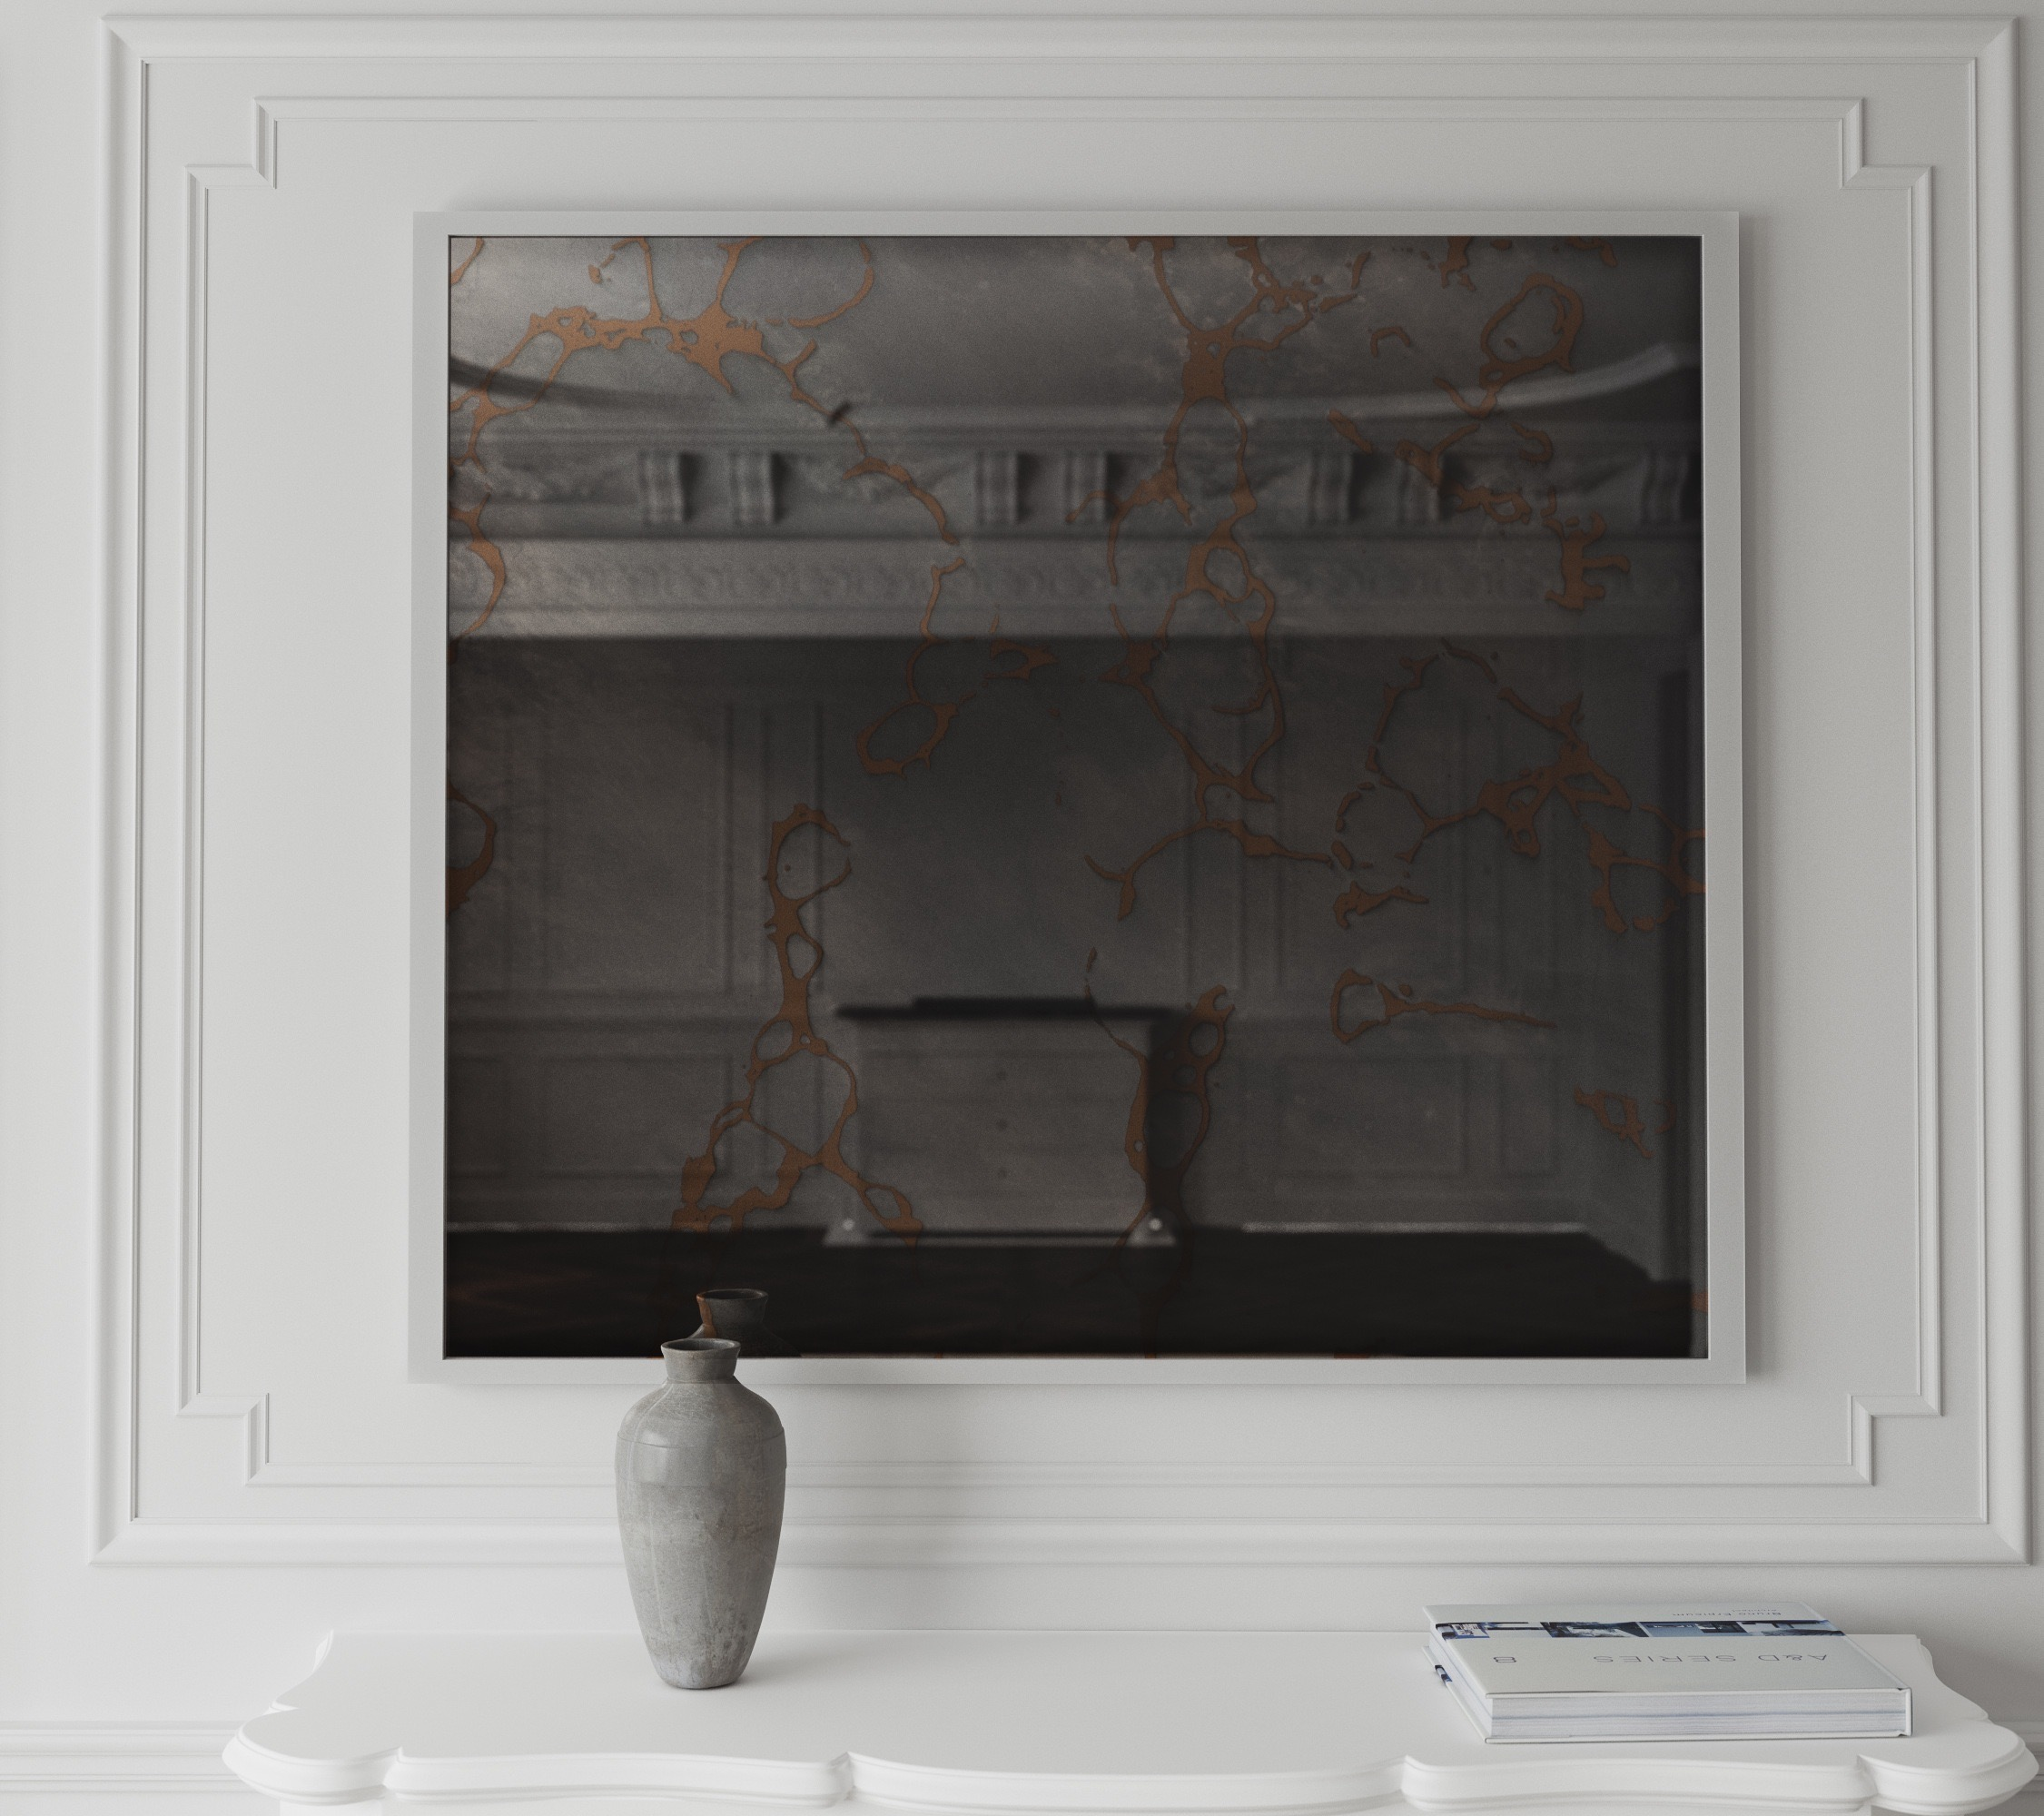 Frame antiqued wall mirror